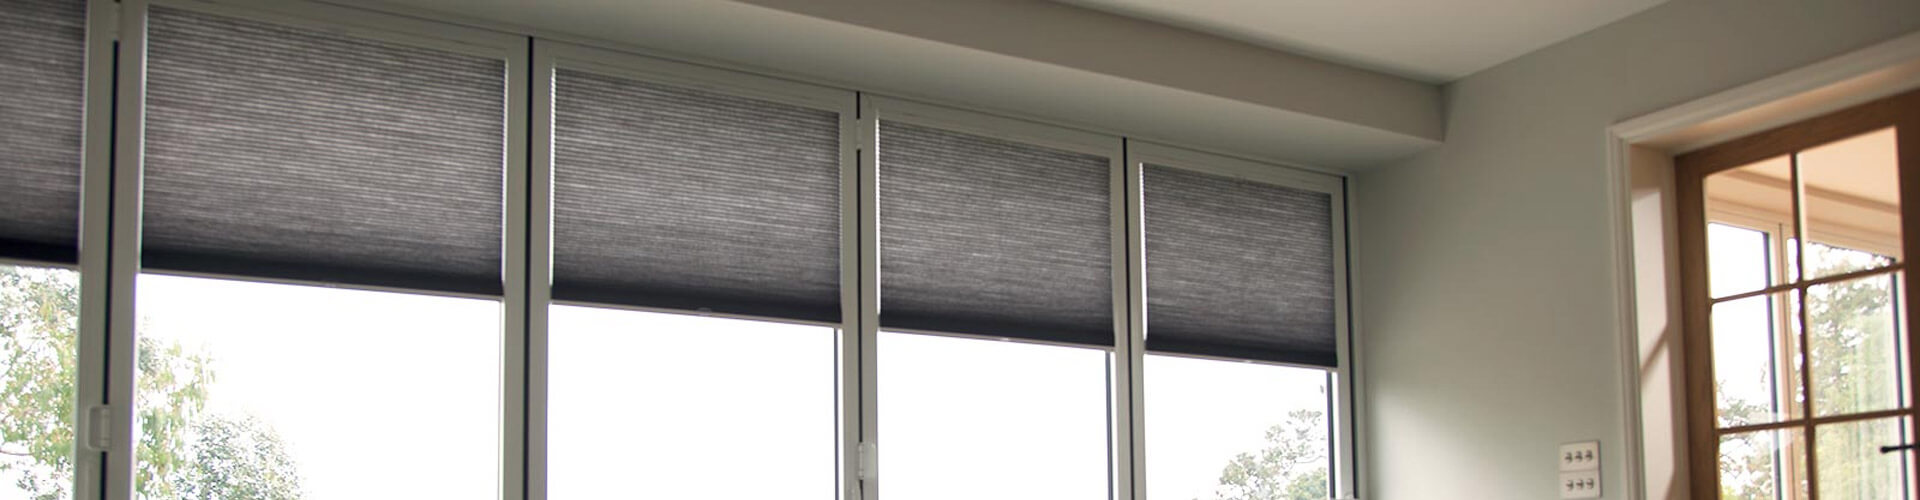 Domestic Blackout Blinds